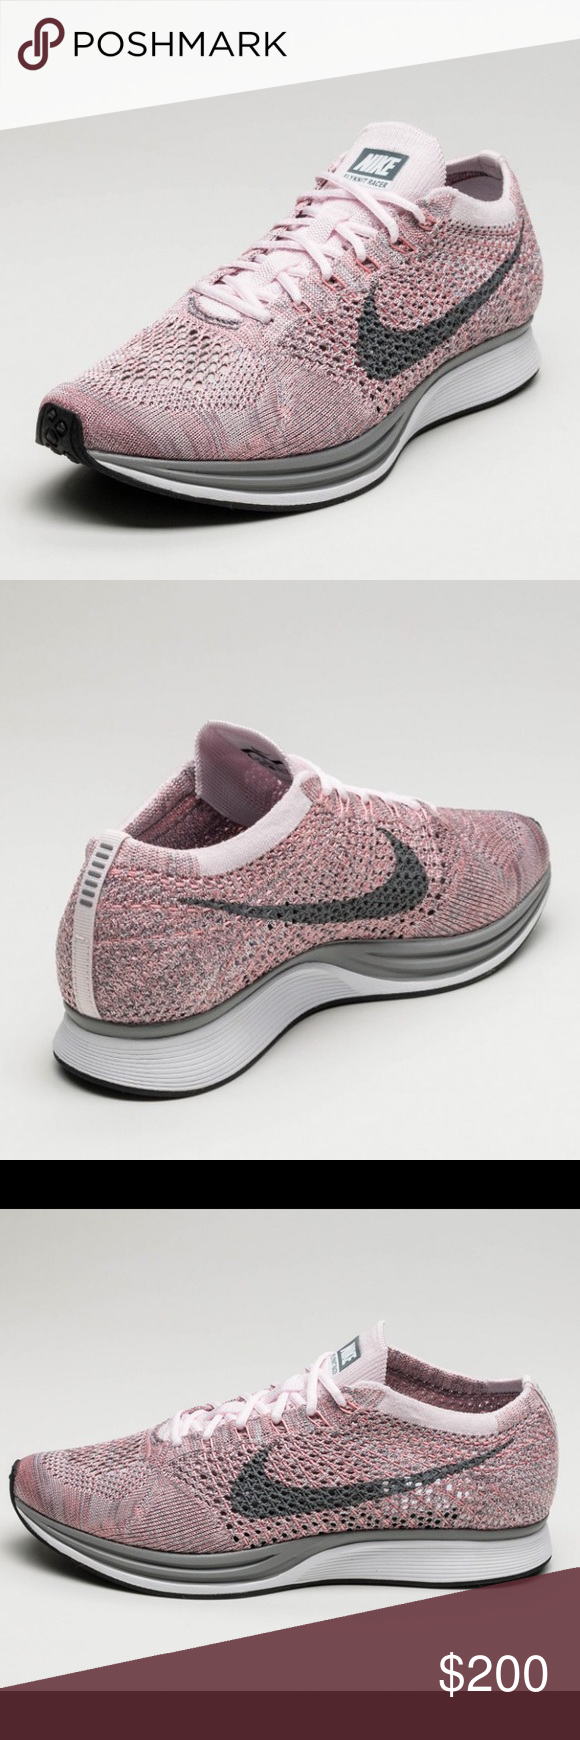 7da7da119373 Nike Flyknit Racer Macaron Pack Strawberry Size 7.5 Women s. Brand New with  Box. SOLD OUT on this Size. Nike Shoes Athletic Shoes